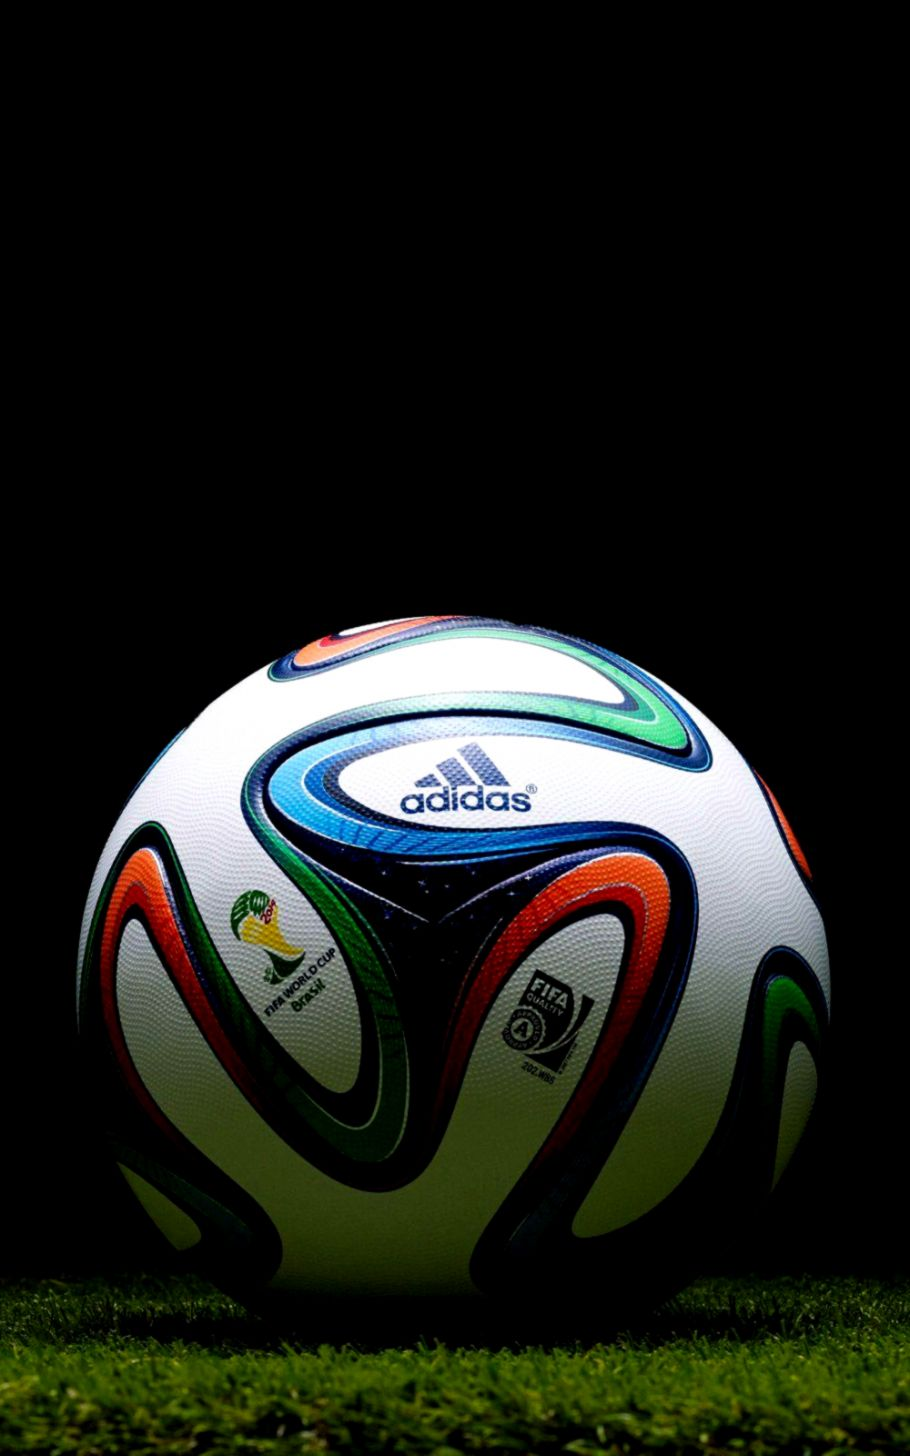 Football Wallpaper Mobile Phone Wallpapers Simple